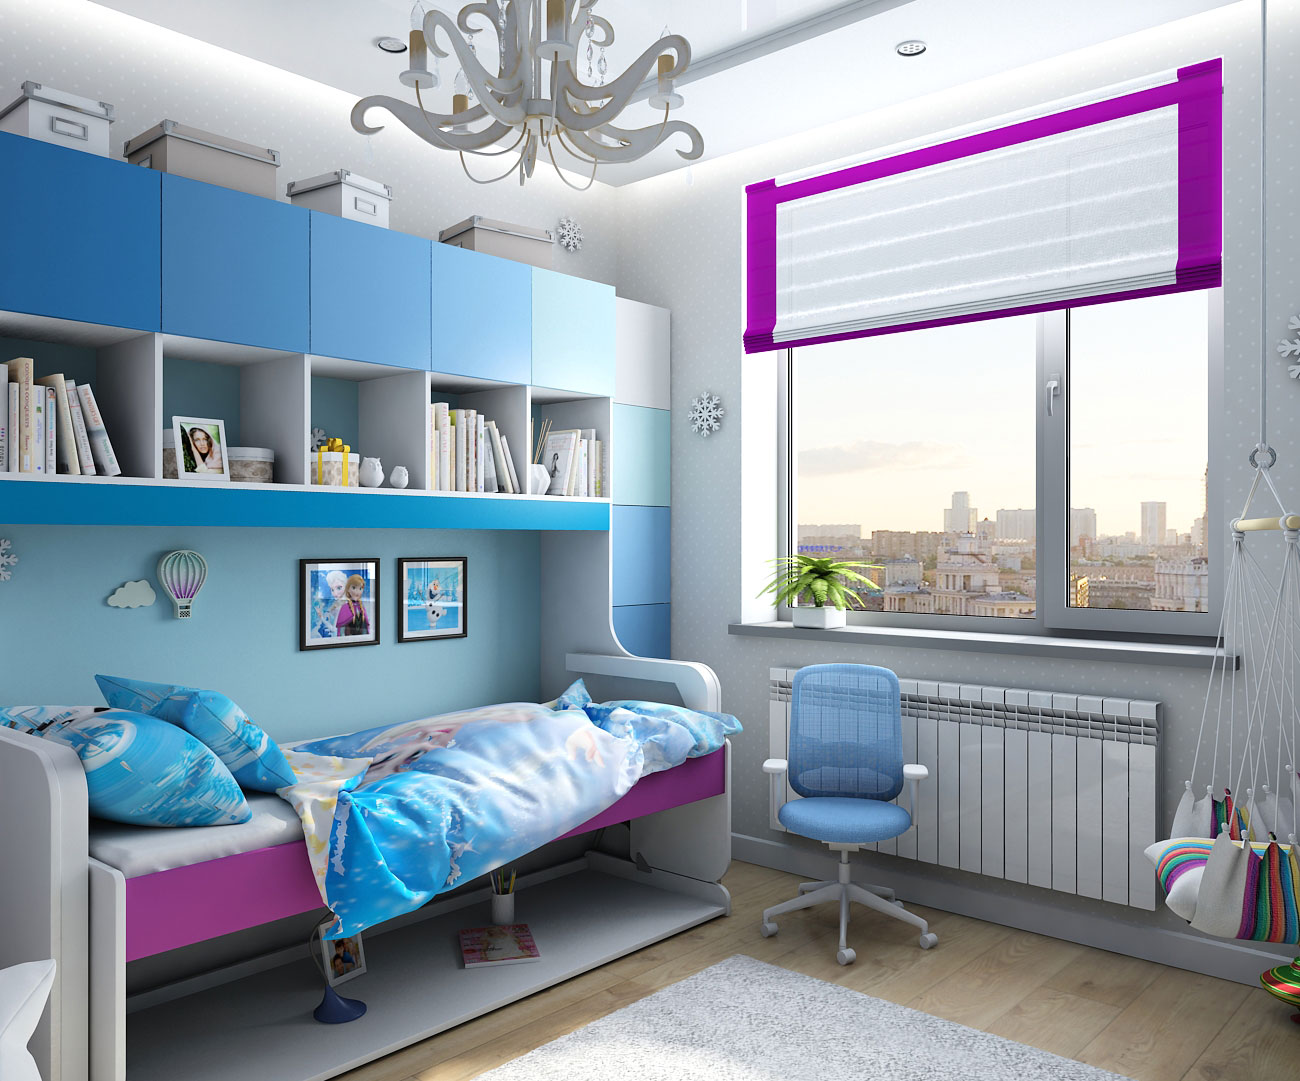 "Design of children's interior in the style of ""Frozen"" in Chernigov in 3d max vray 1.5 image"